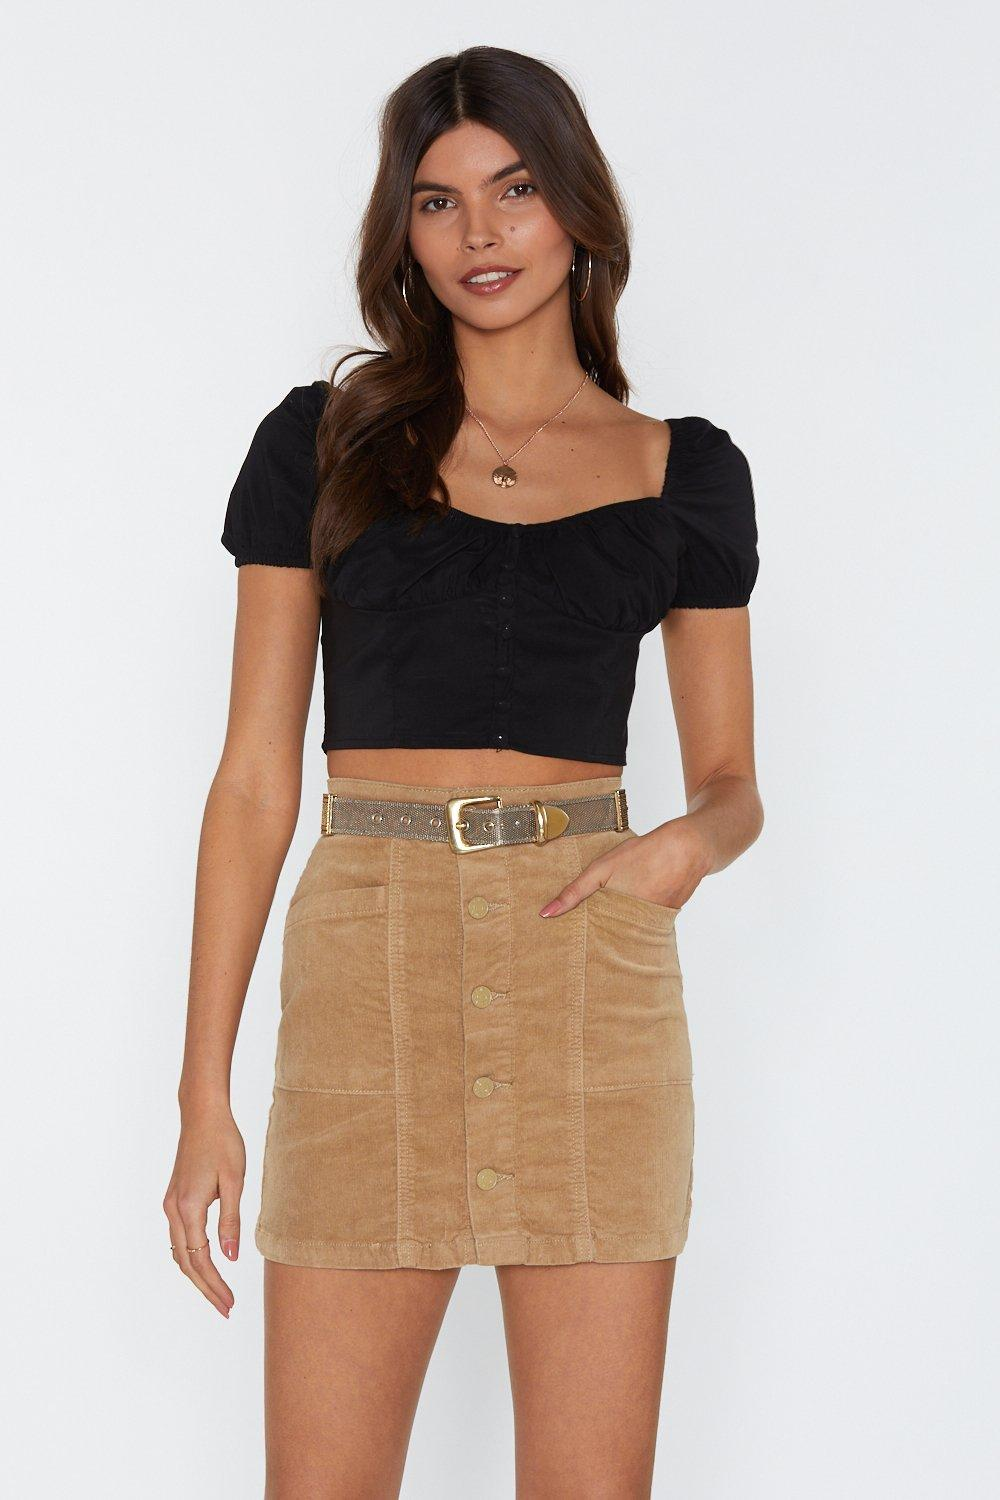 27cc081d0 One More Skirt Corduroy Mini Skirt   Shop Clothes at Nasty Gal!